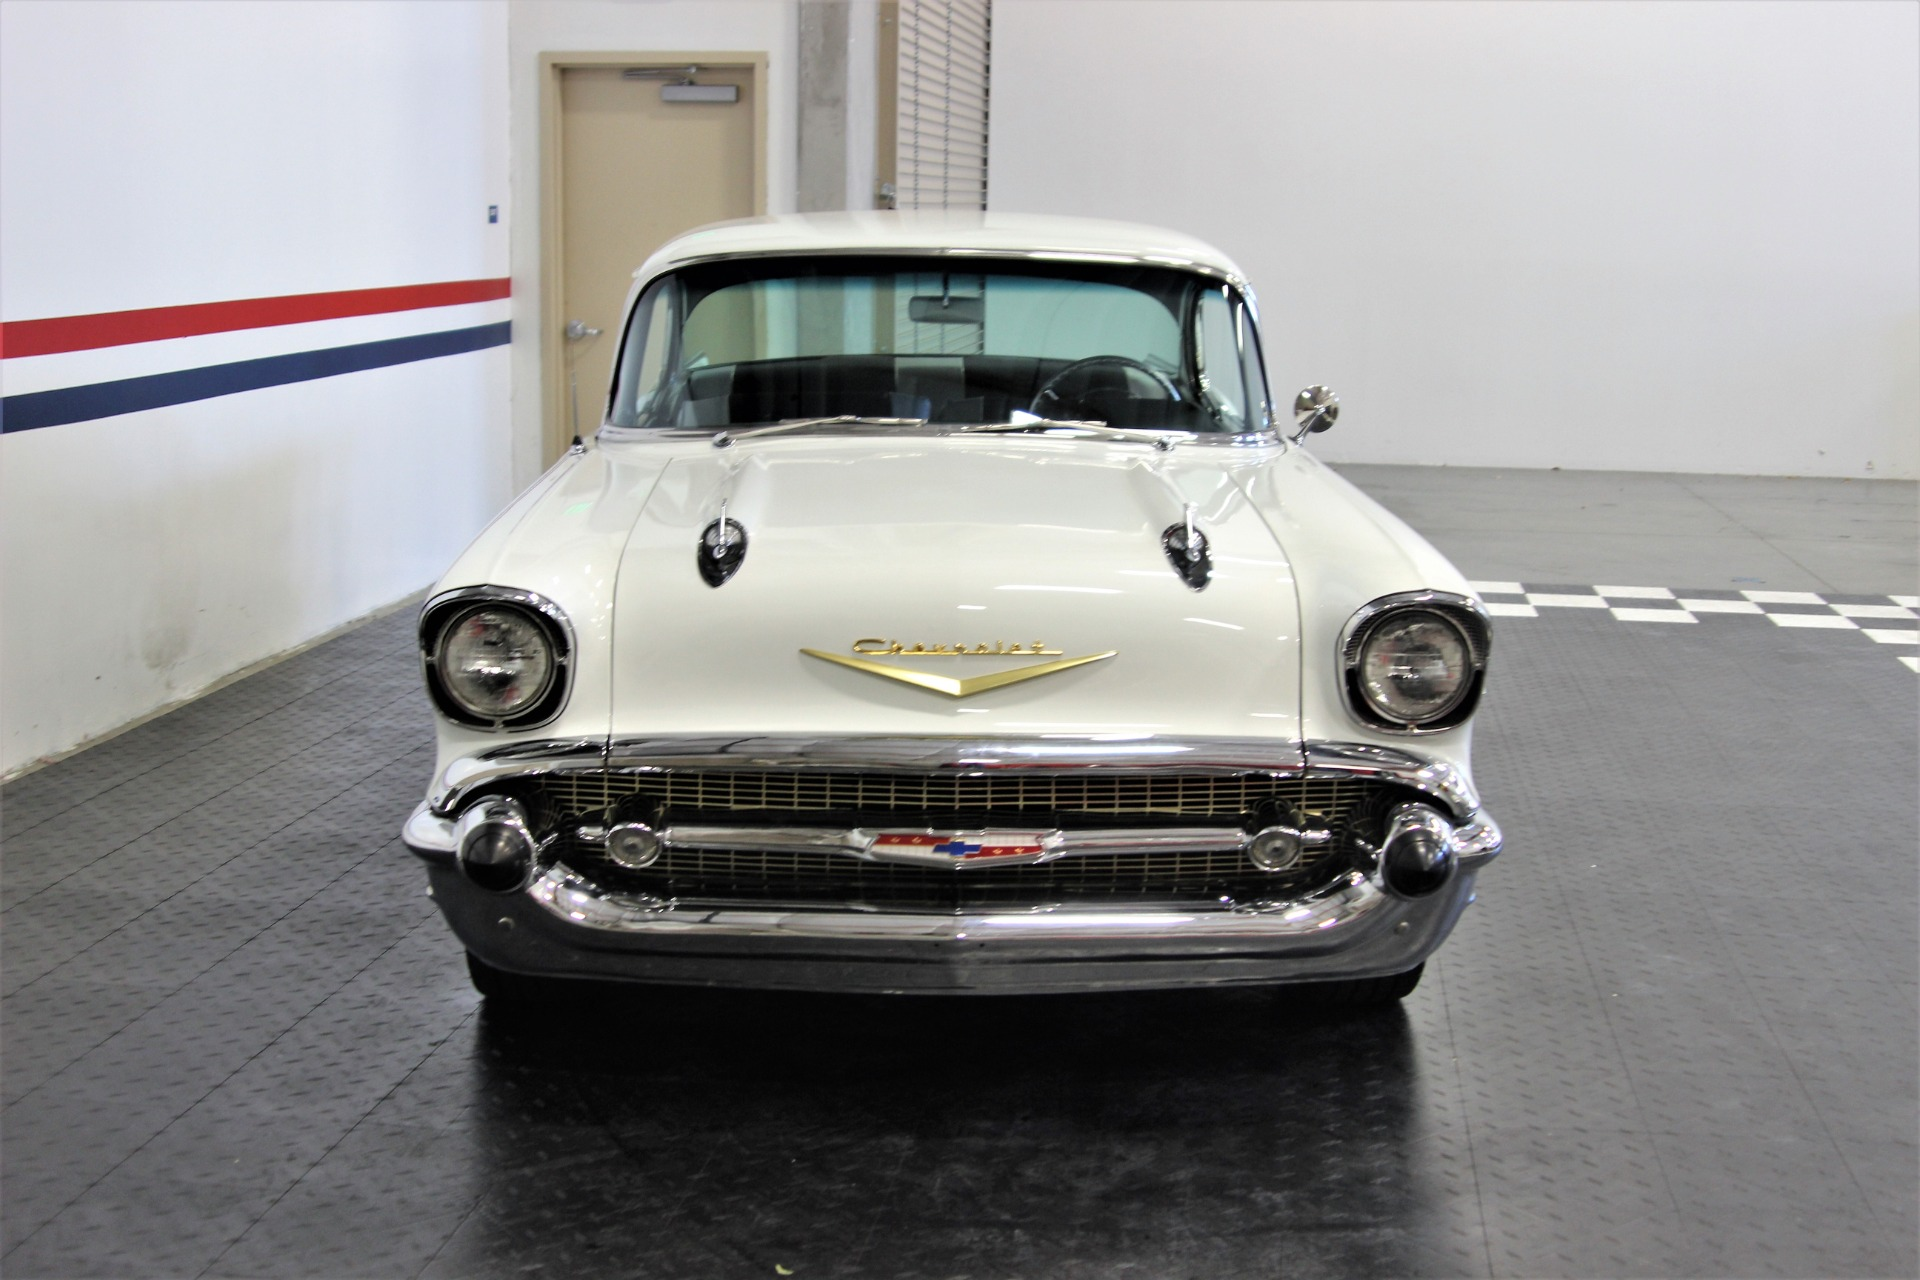 Used-1957-Chevrolet-Bel-Air